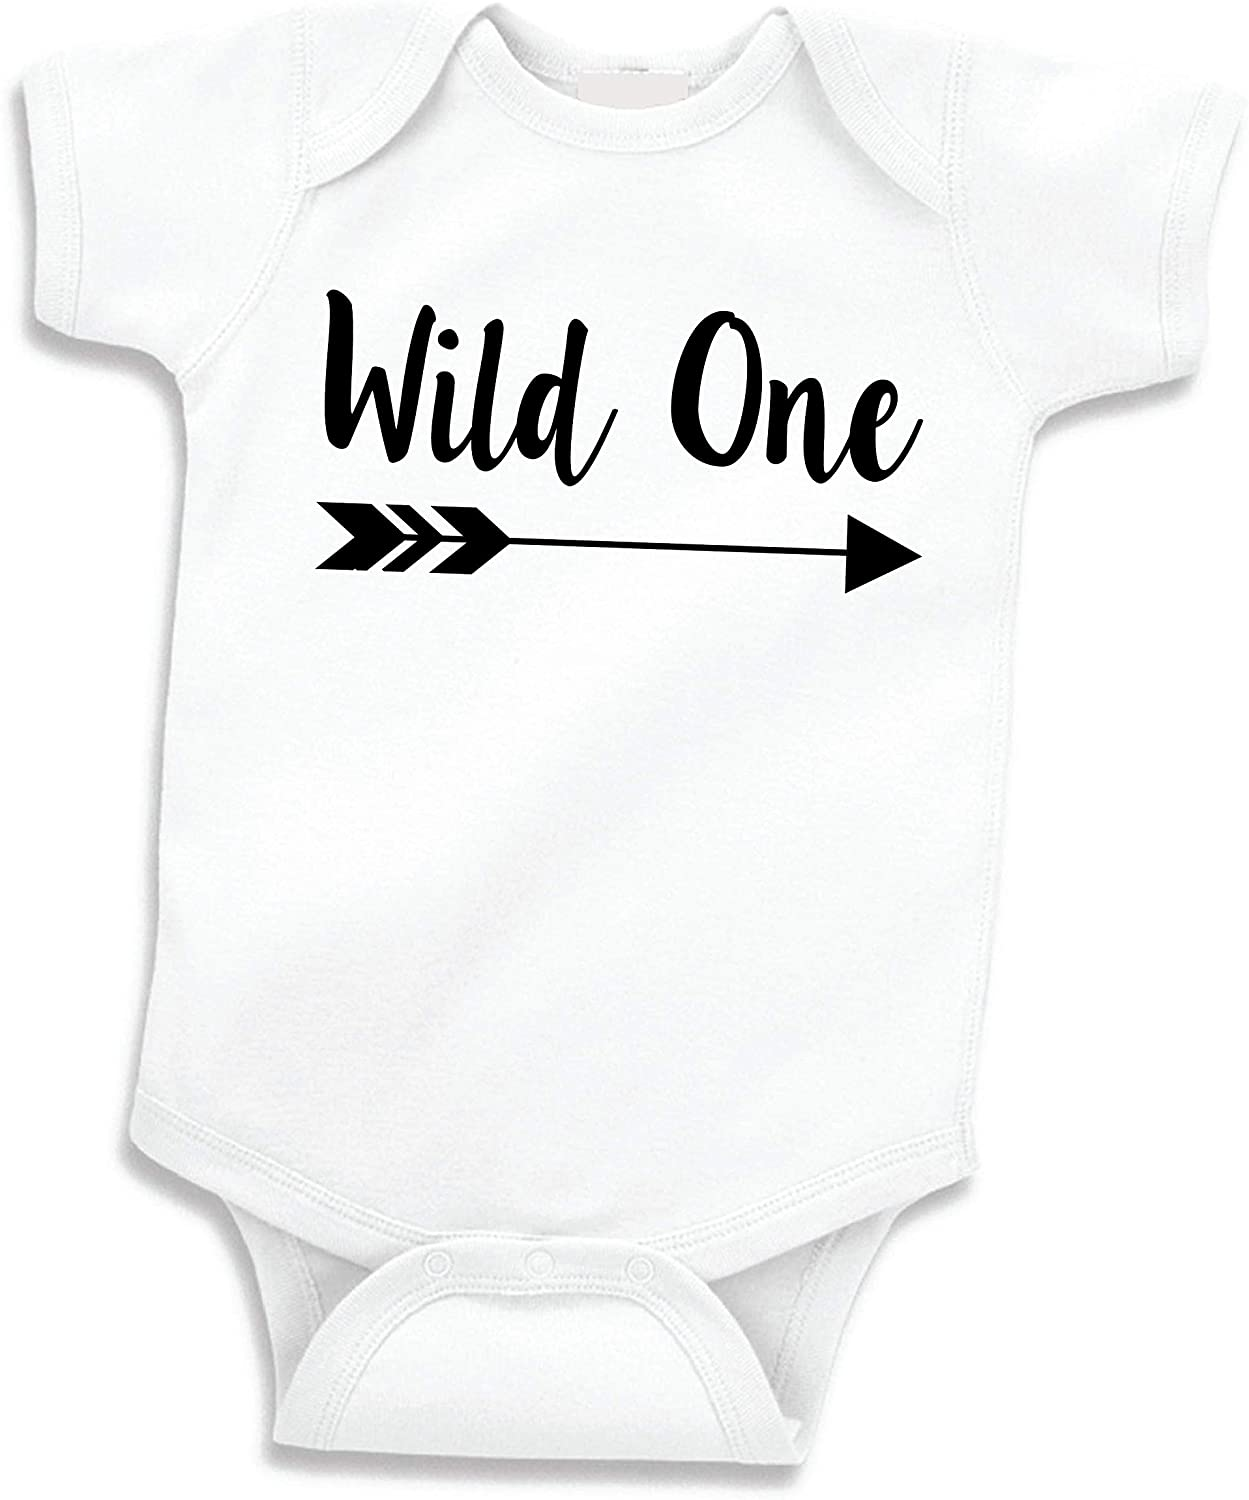 Baby Boy Birthday Shirt Wild One First Birthday Outfit